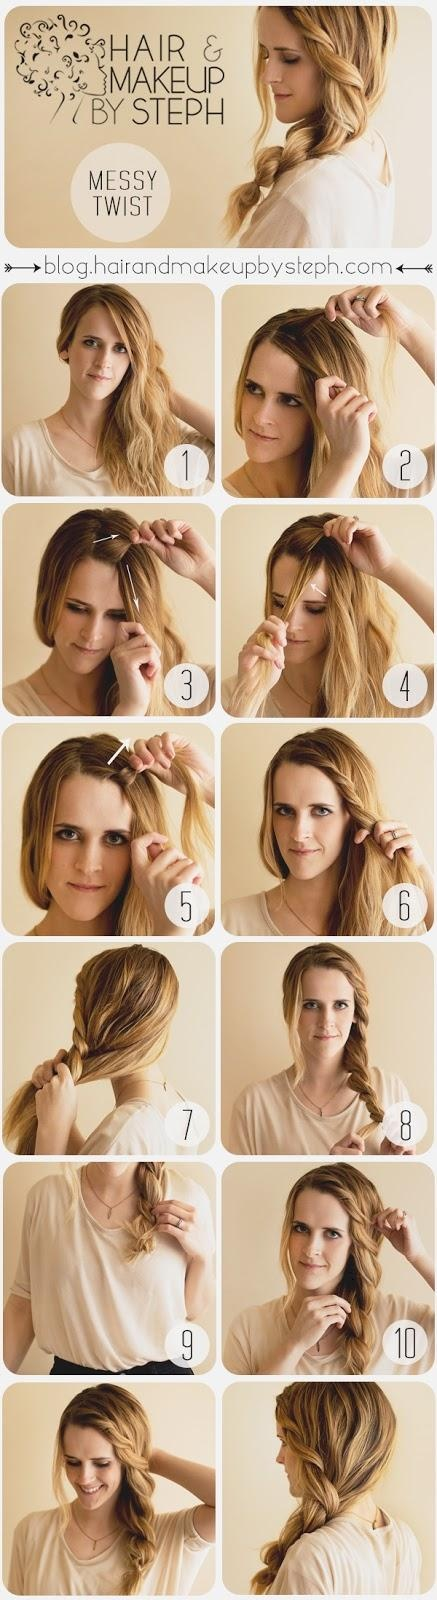 Cute Hairstyles Hair Tutorial with Twist